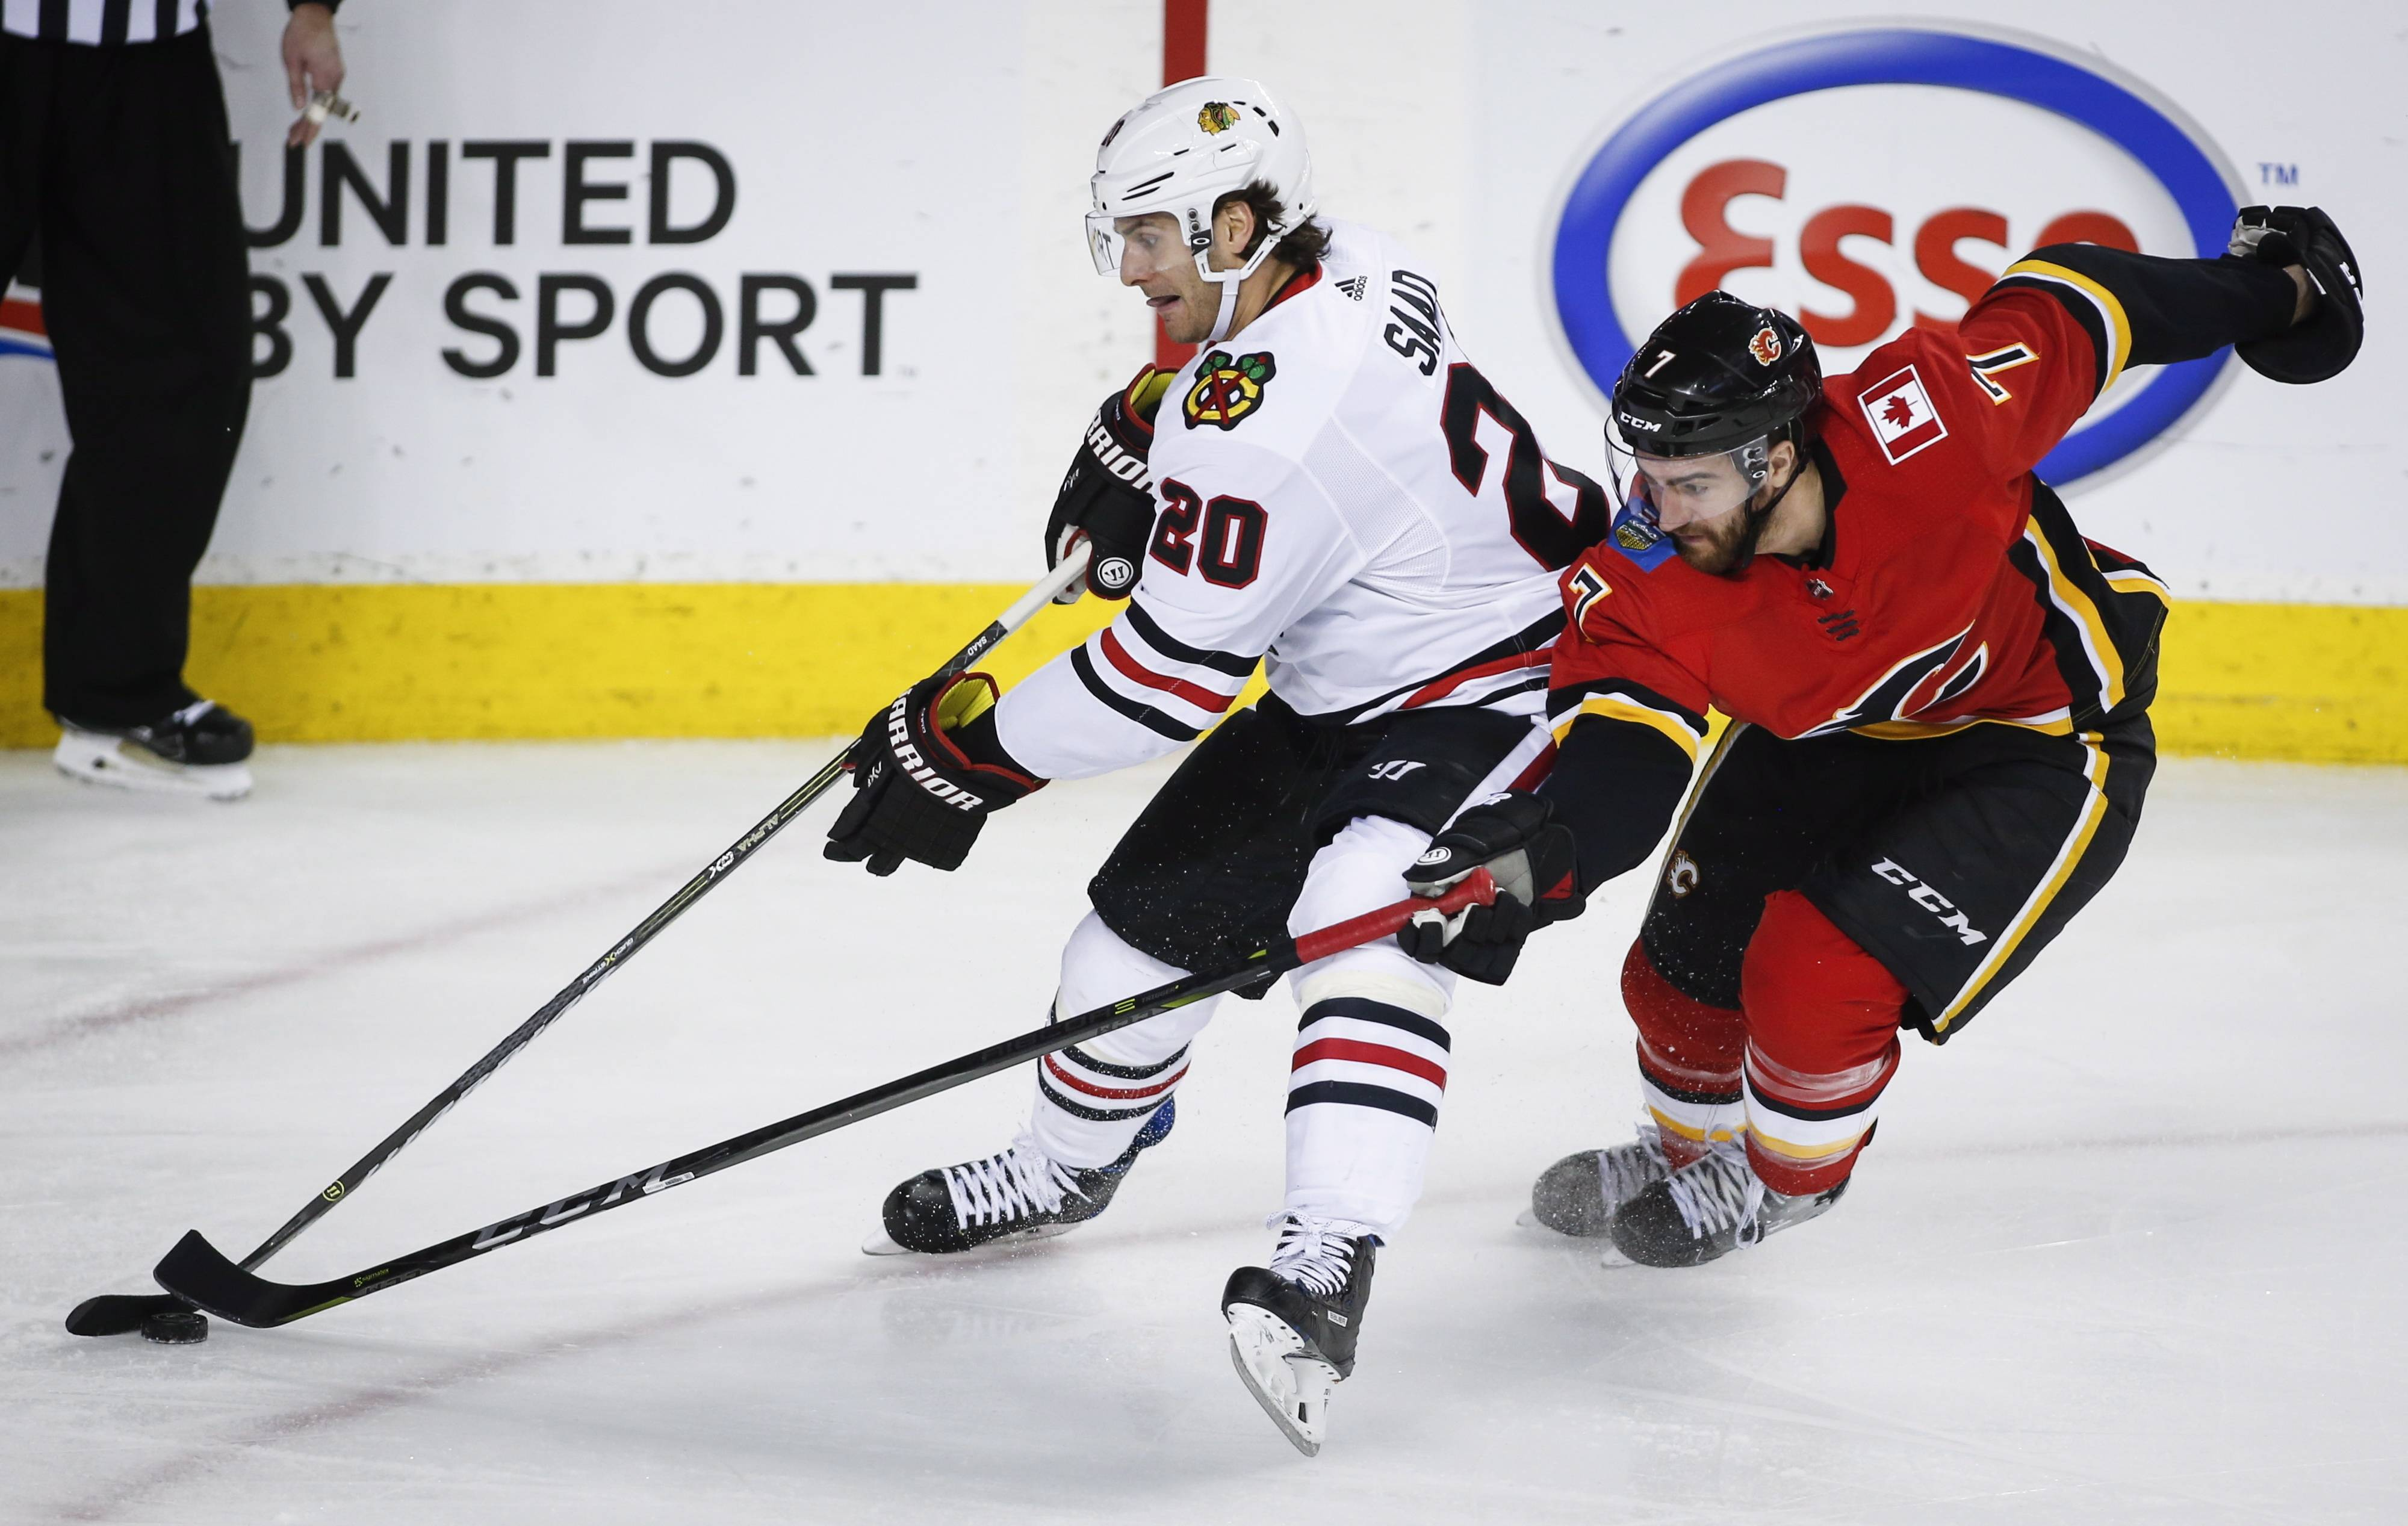 Quenneville hopes line change helps trio of Chicago Blackhawks